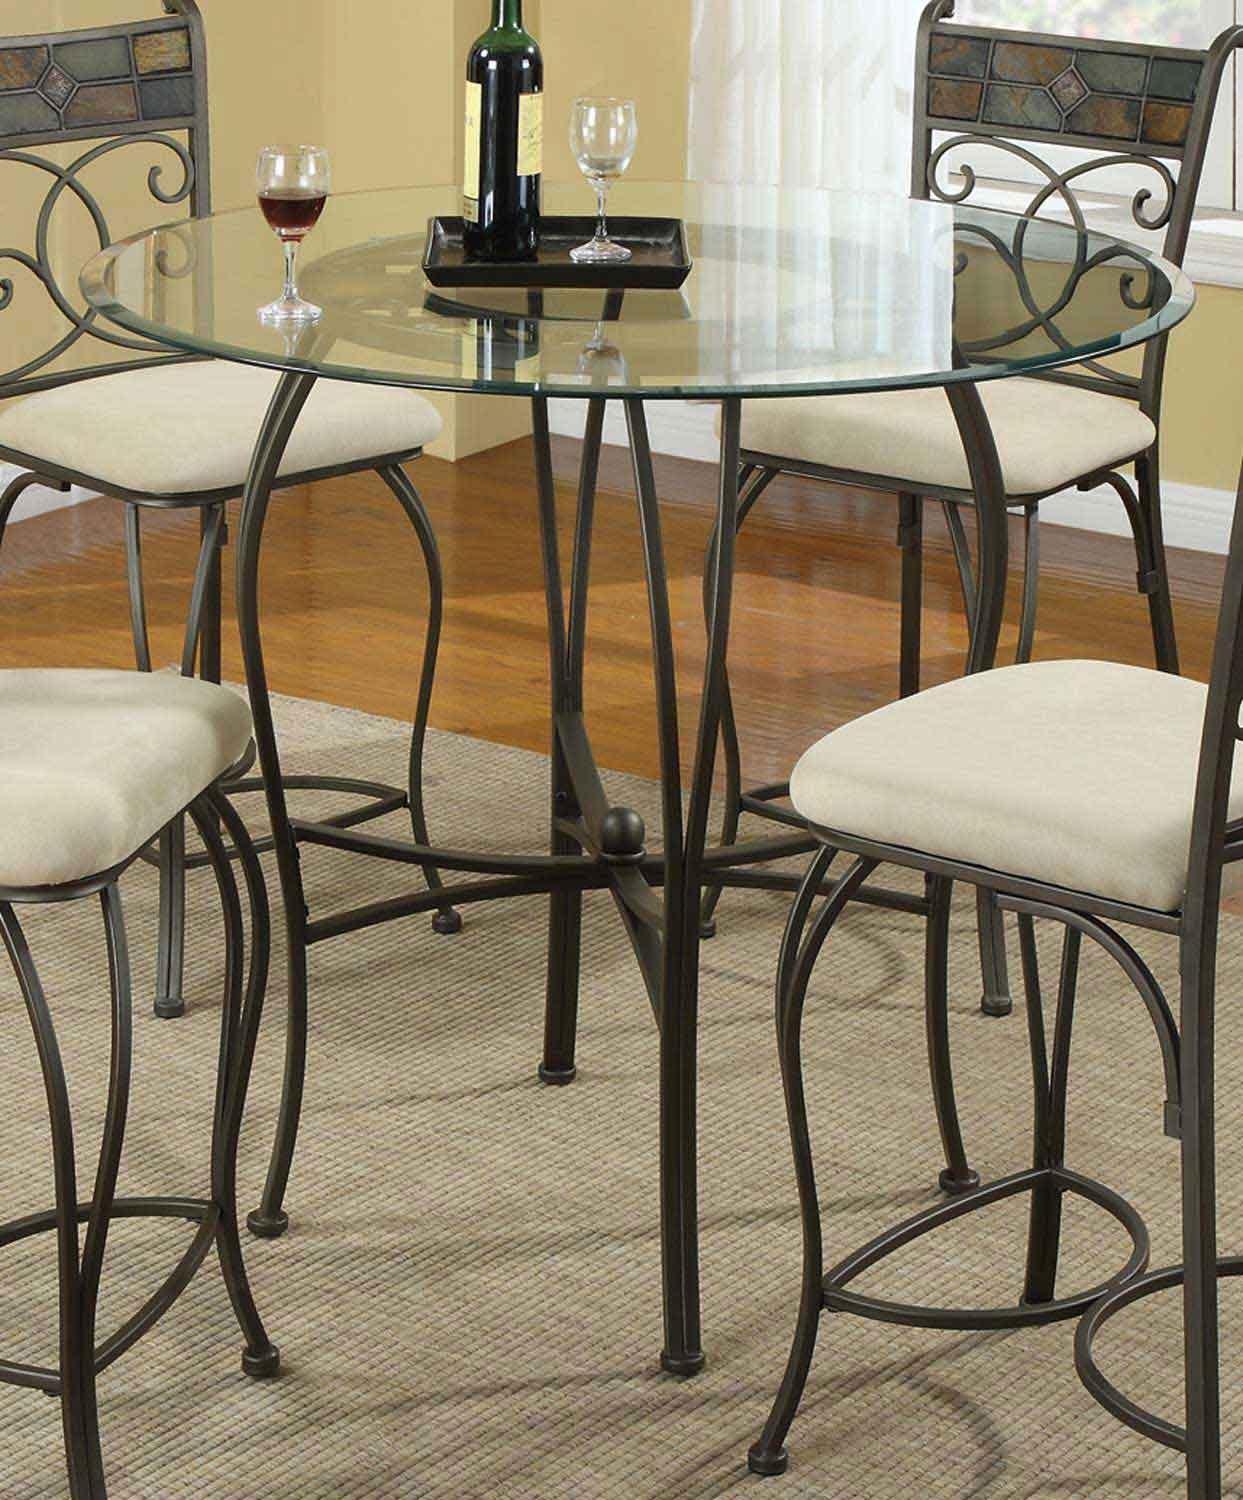 Coaster 120838 Round Glass Top Counter Height Dining Set